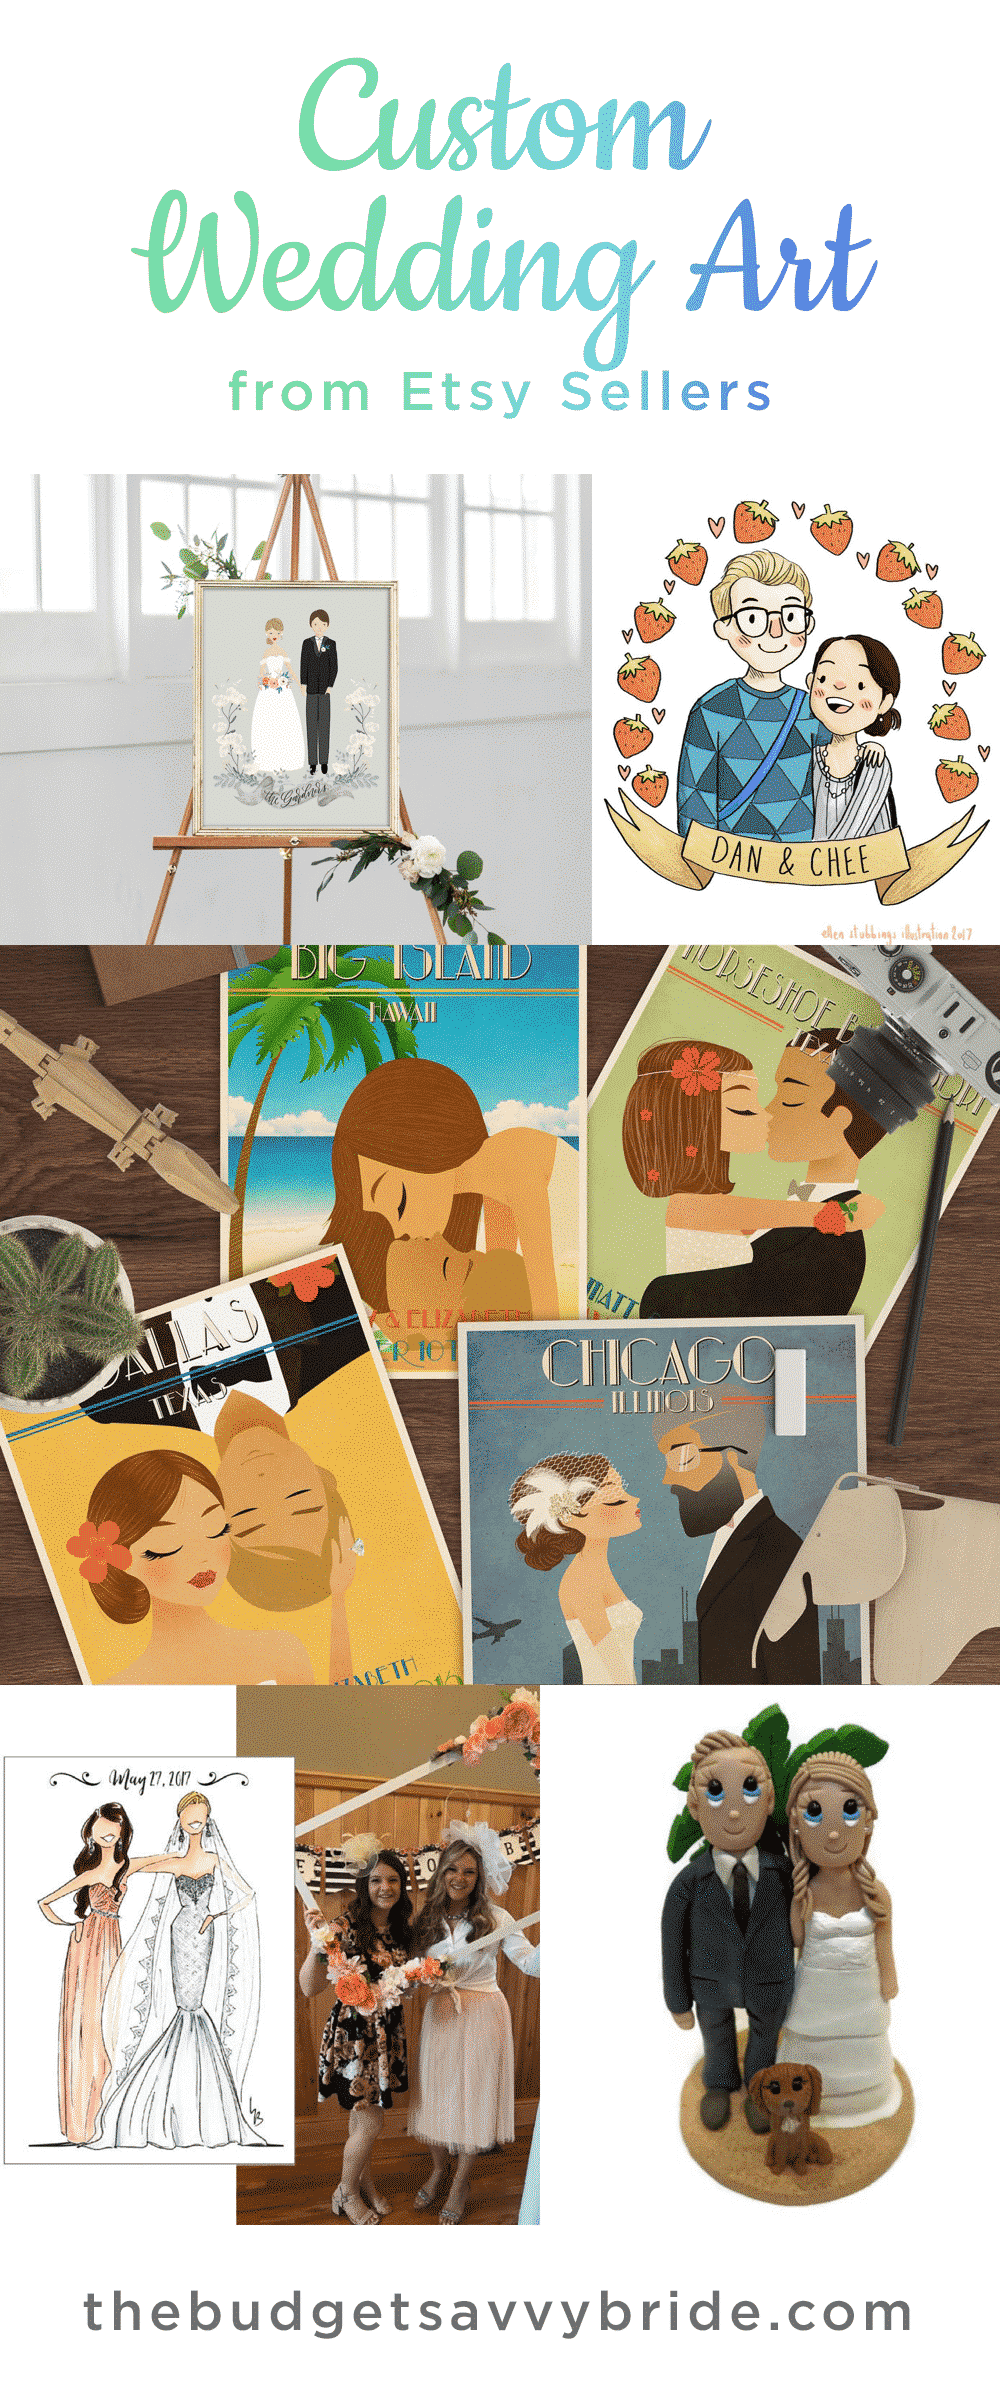 If you're in the market for custom wedding art, including portraits, monograms, and cake toppers, check out this installment of our Etsy Finds series.